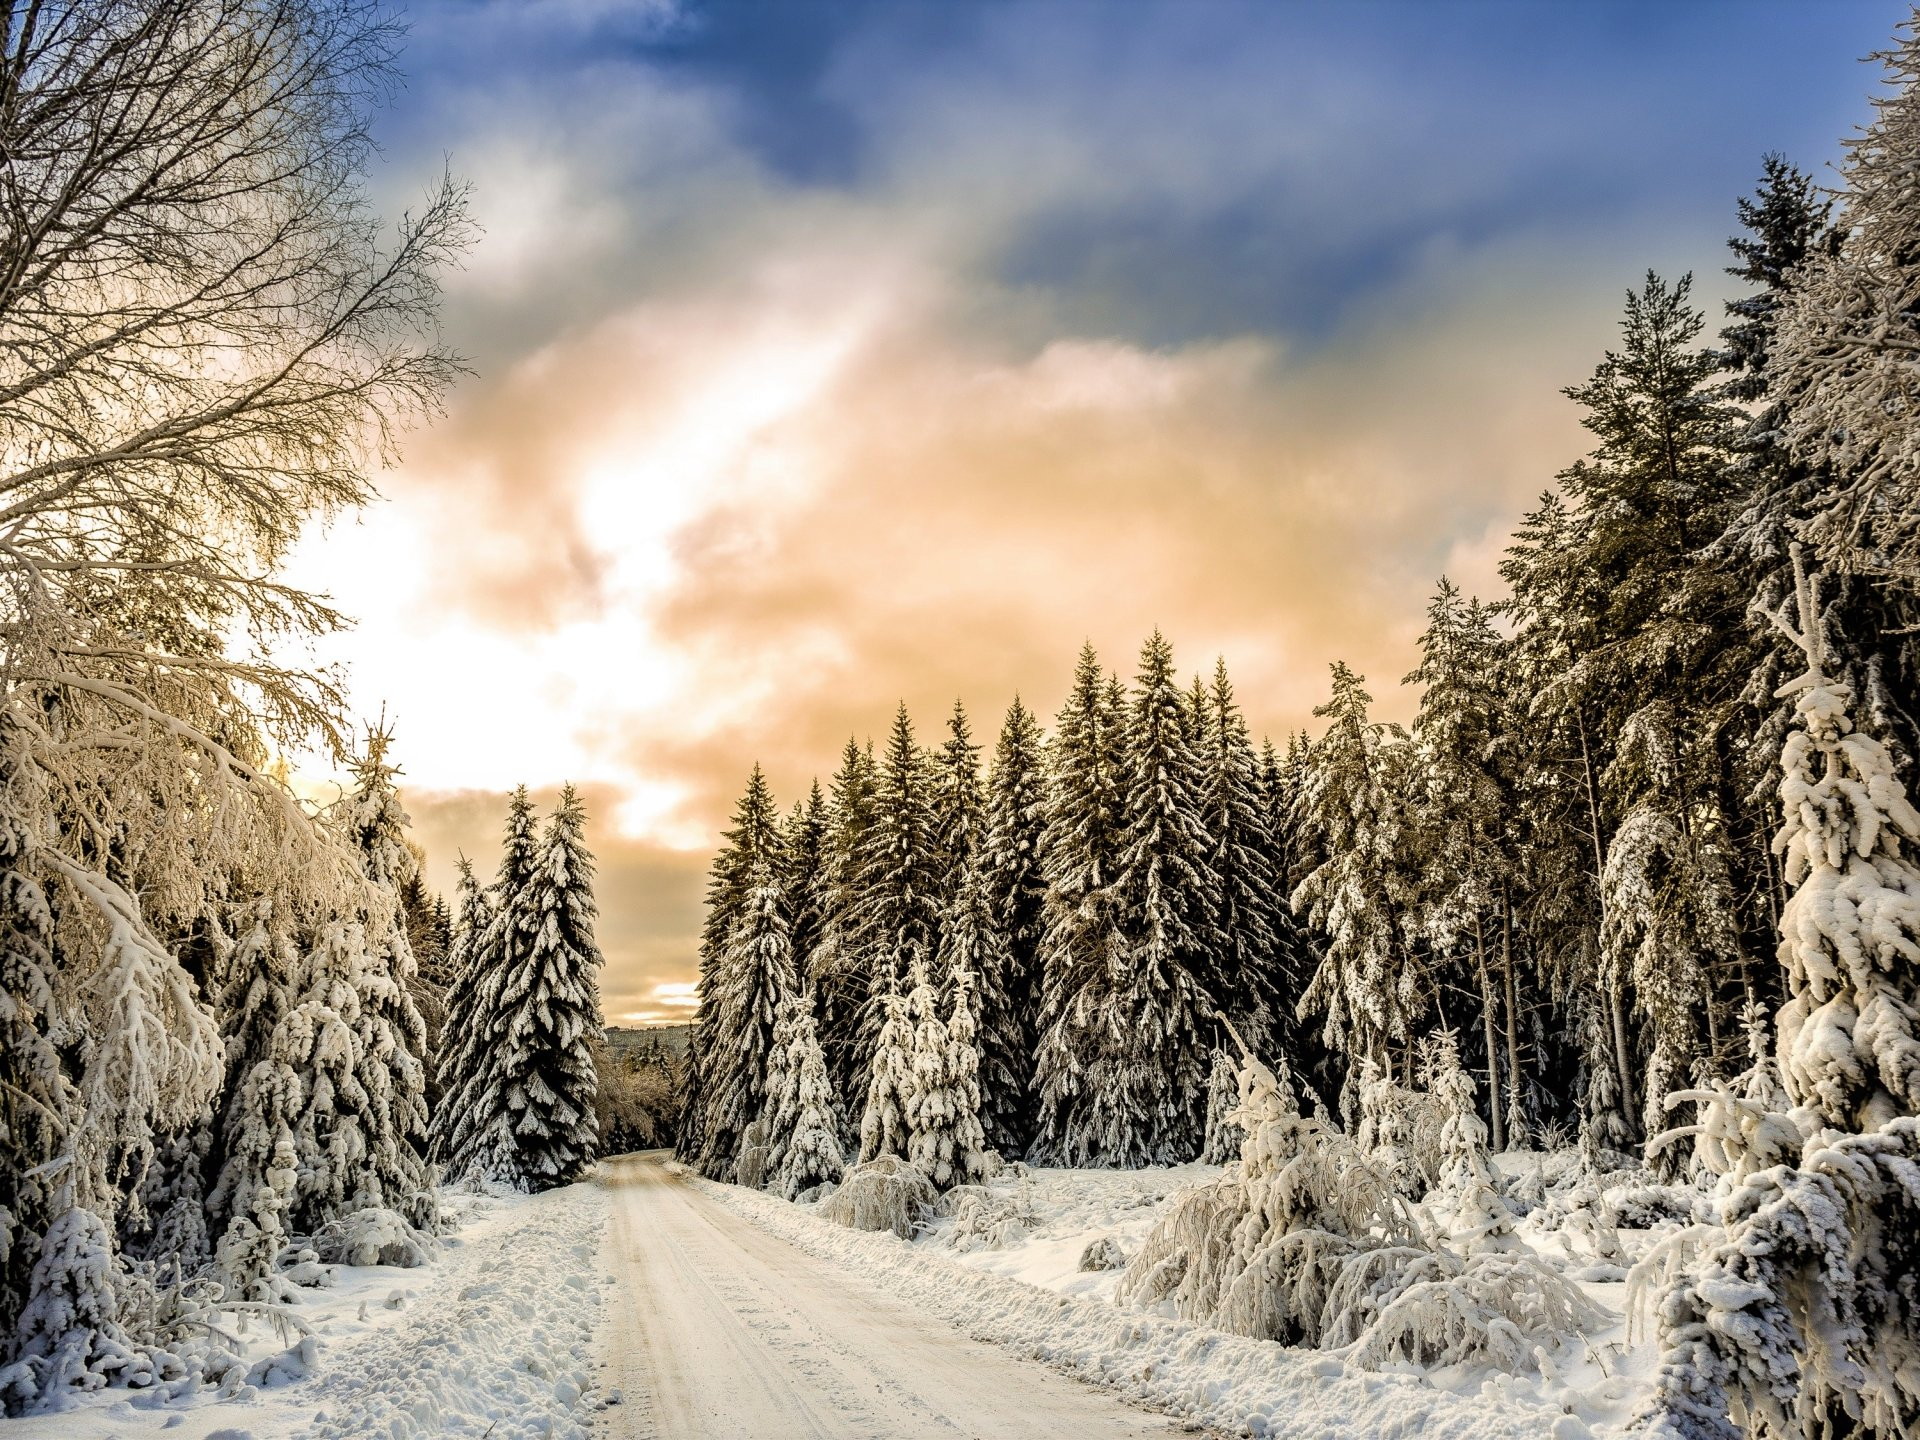 Man Made - Road  Winter Snow Tree Forest Wallpaper